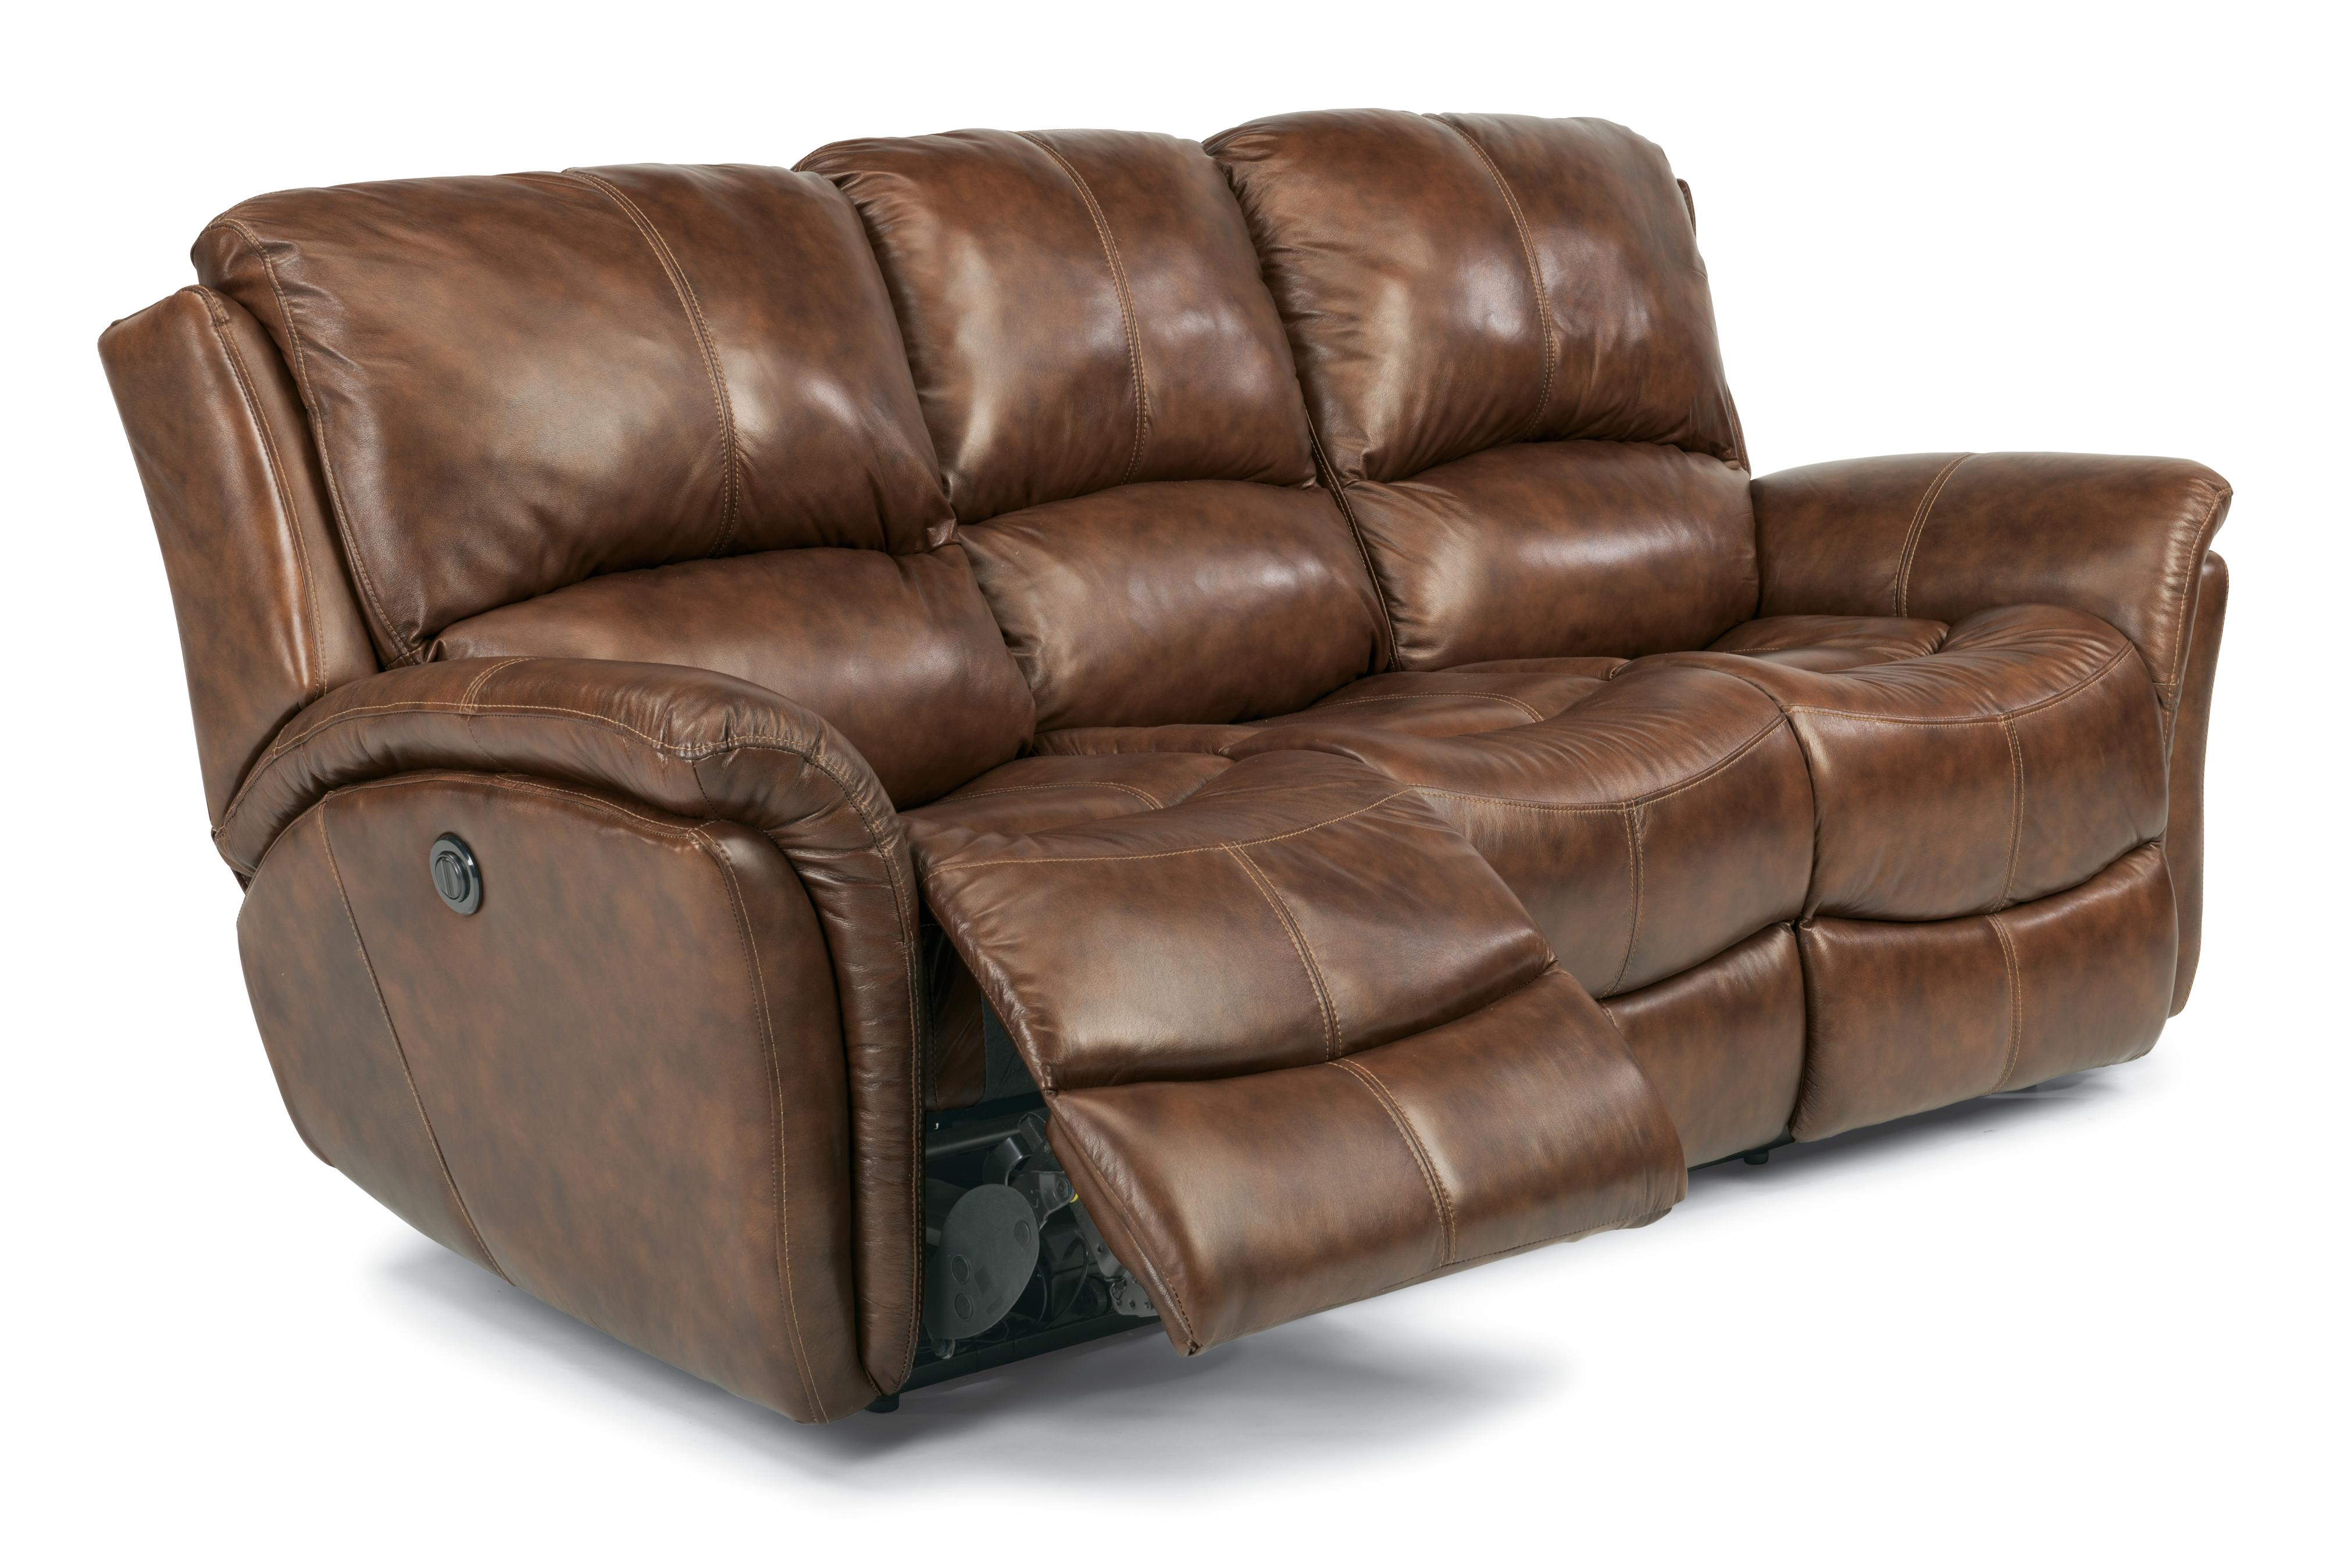 Flexsteel latitudes dominique casual reclining sofa with for Casual couch